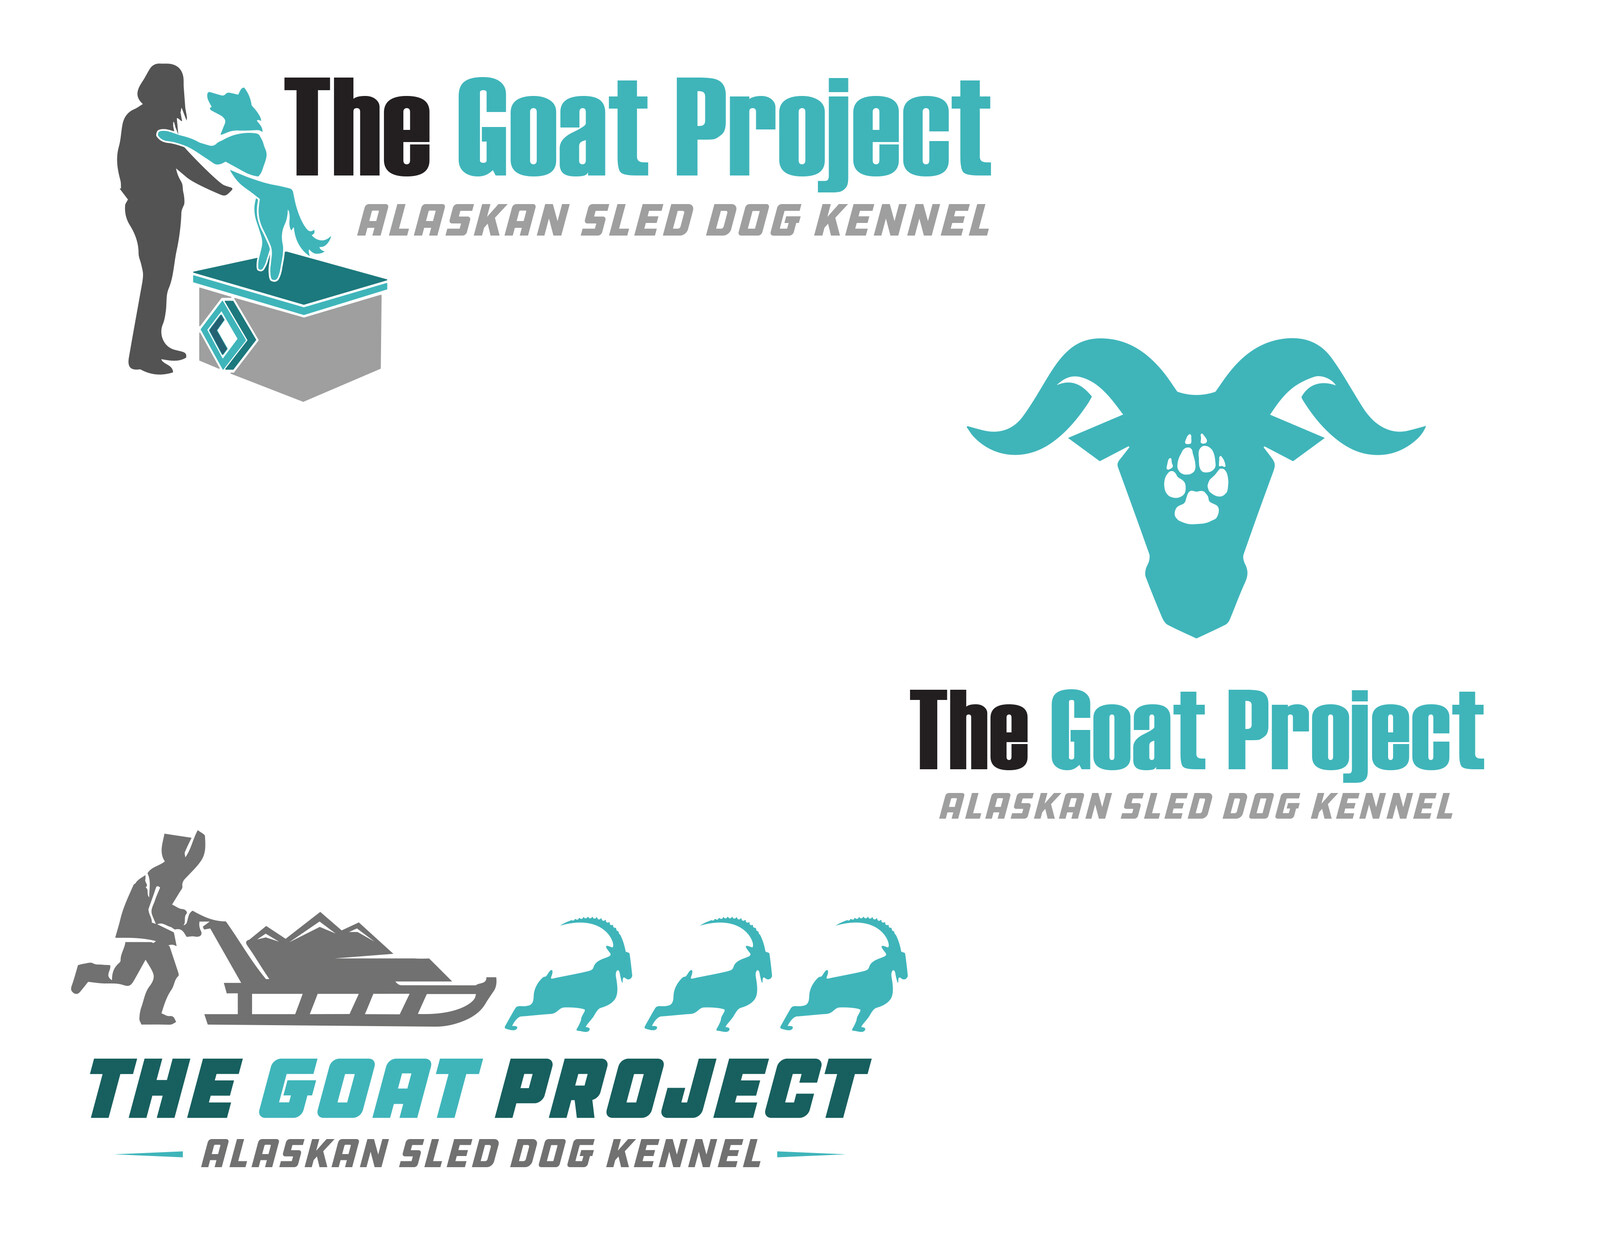 The Goat Project - Alaskan Sled Dog Kennel